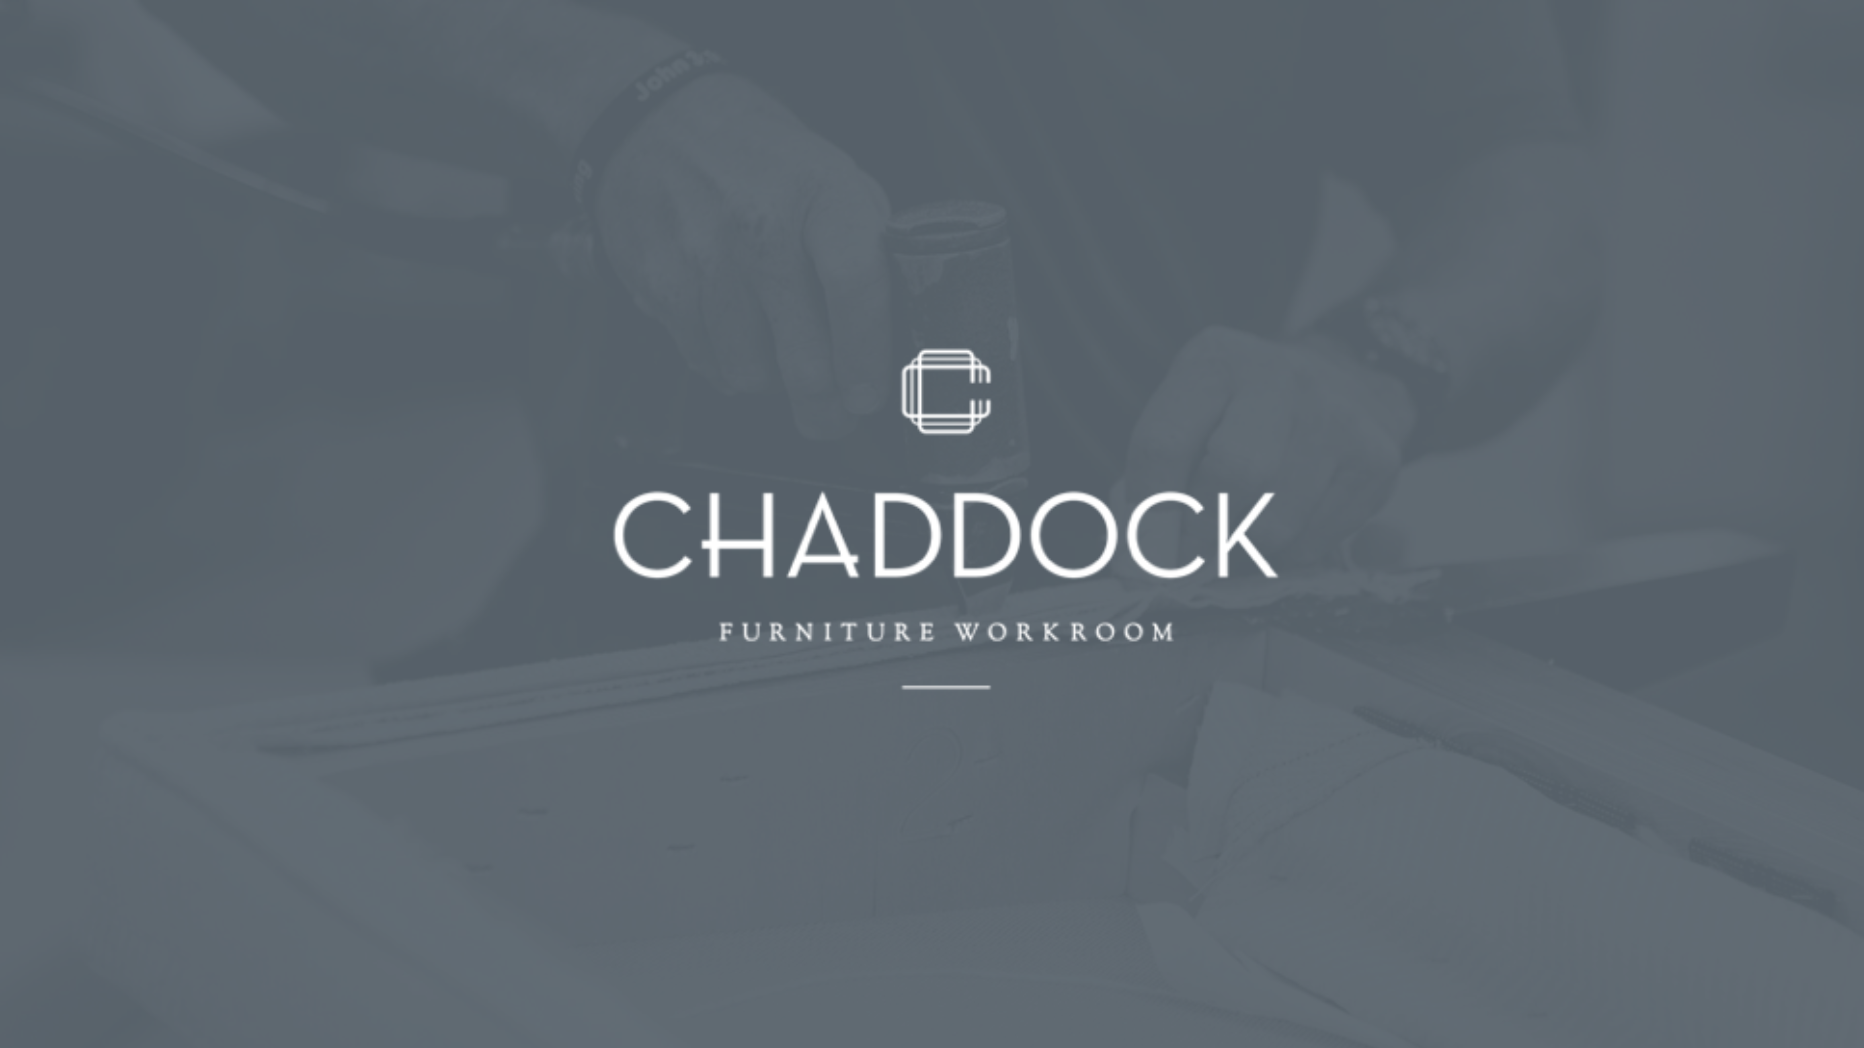 Chaddock - 200 Steele St, Suite 106  Based in Morganton, North Carolina, Chaddock is known for creating made-to-order furniture that's built to last and for their close collaborations with designers. This fall, they'll be launching pieces with Larry Laslo and Mary McDonald.